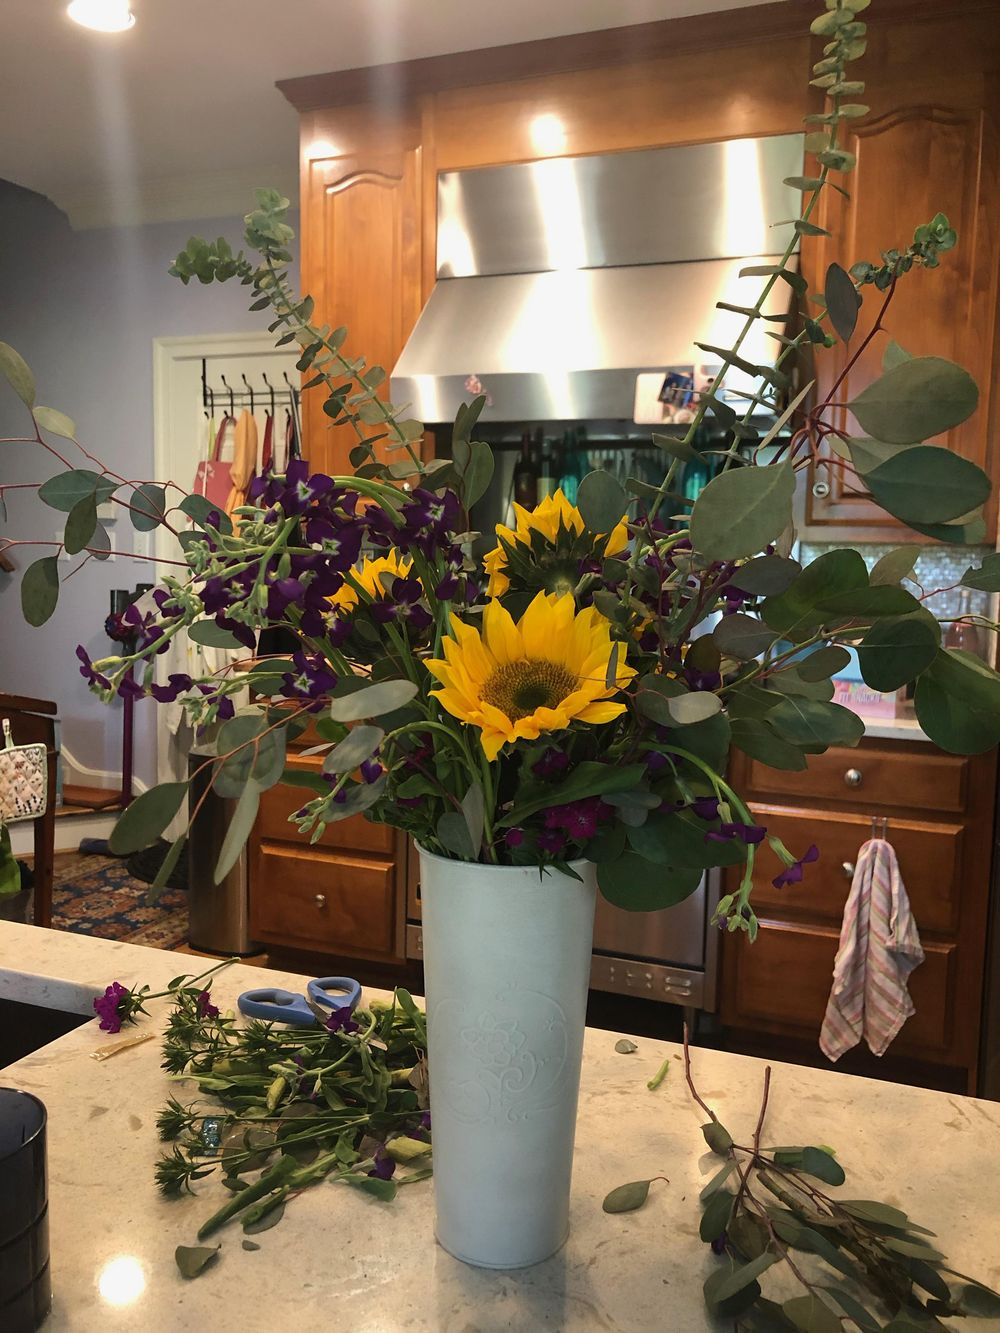 My First (and second!) Vase Arrangement - image 2 - student project